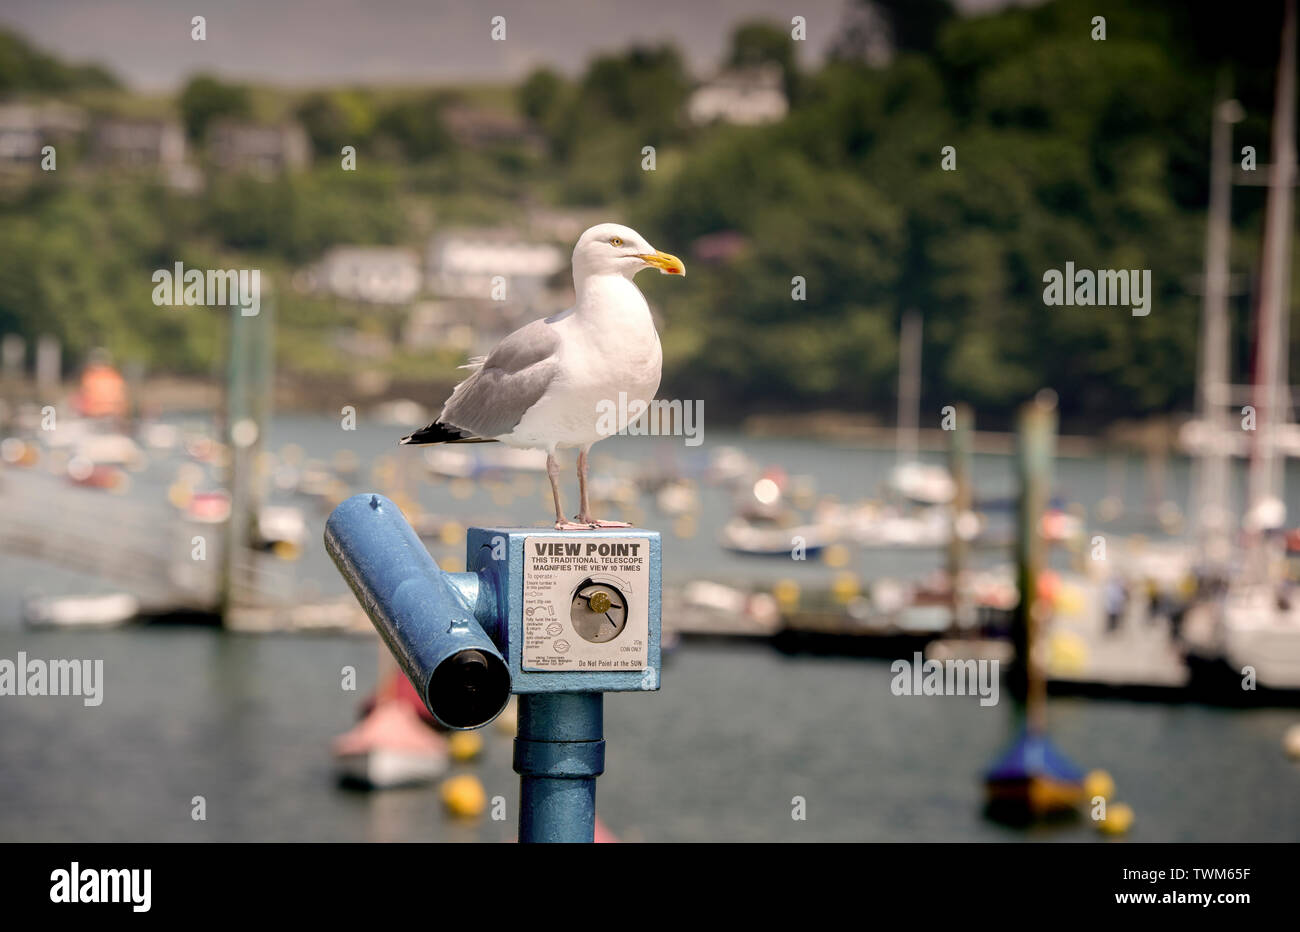 A seagull stands on the top of a viewing telescope in the port of Fowey, Cornwall, UK Stock Photo